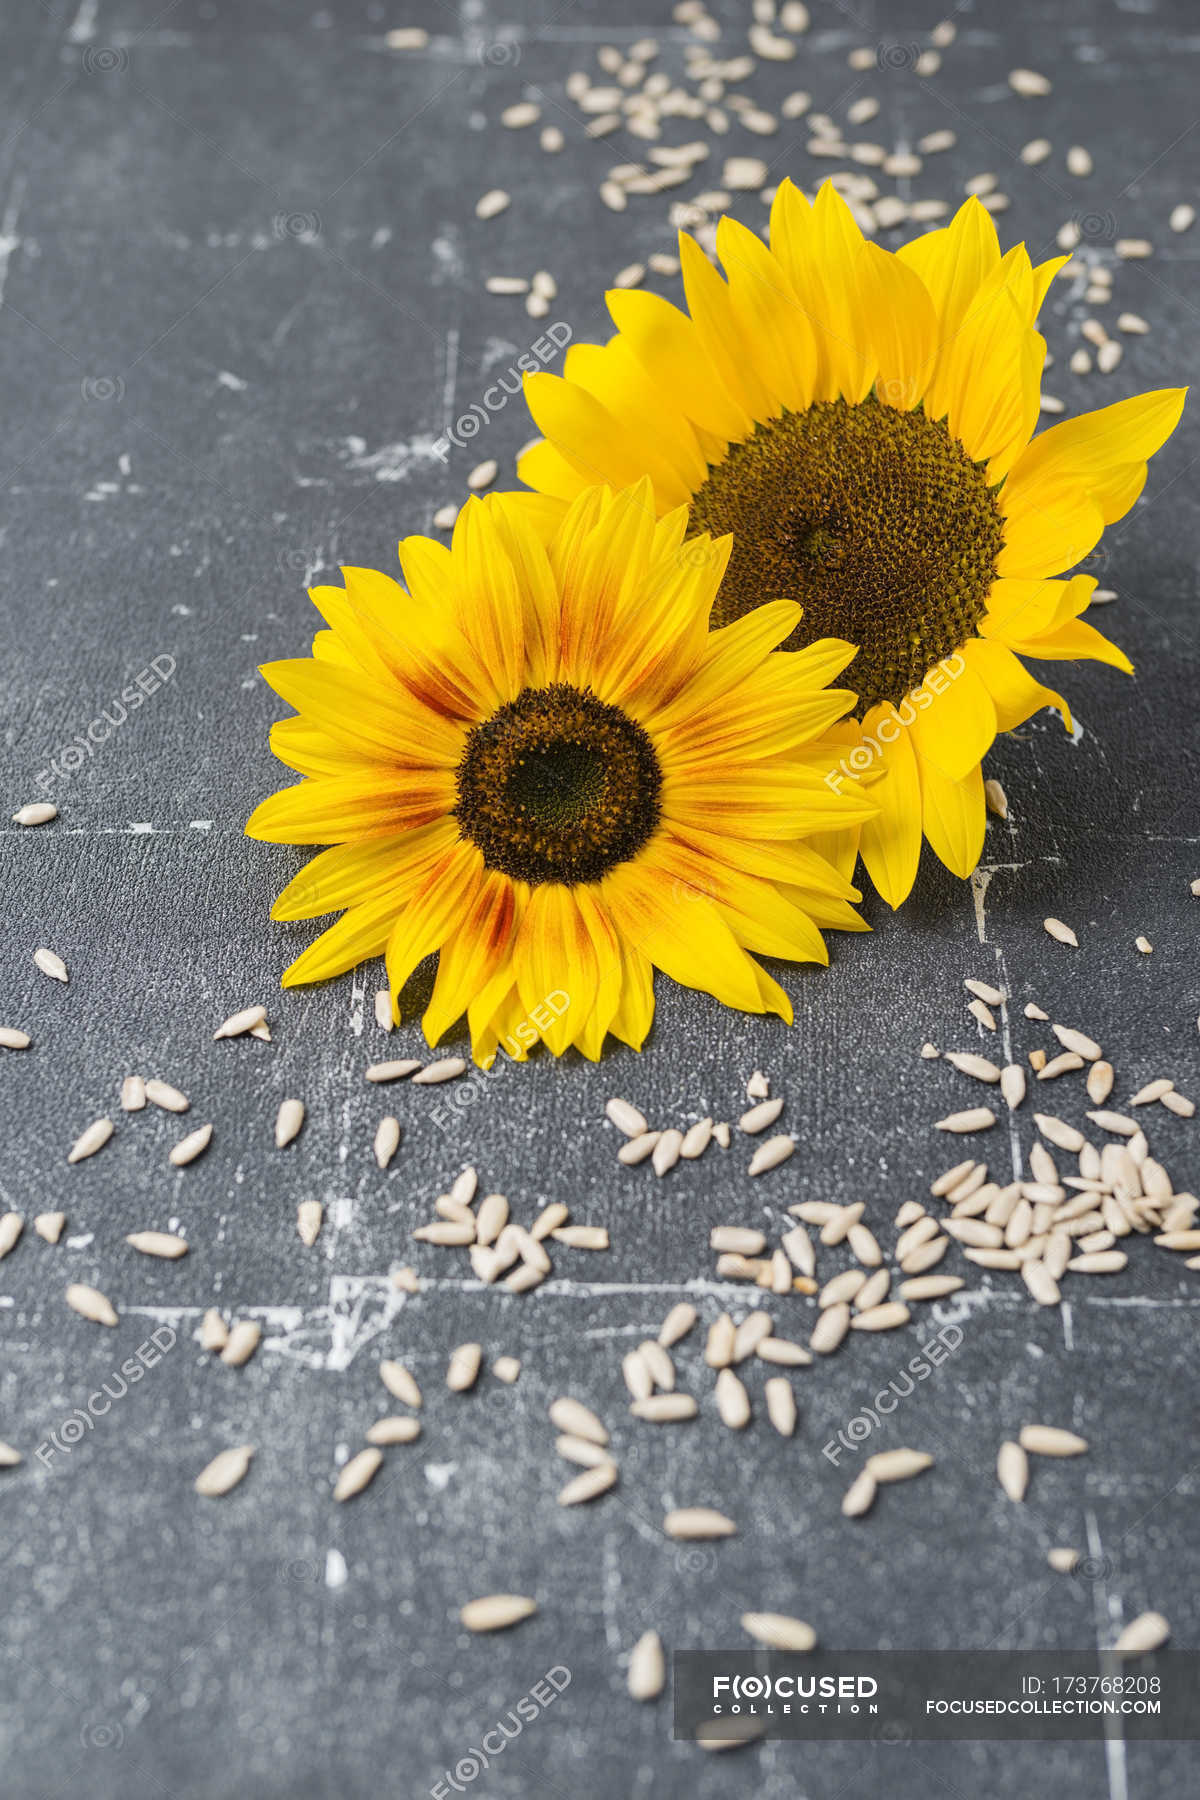 Tered Sunflower Seeds